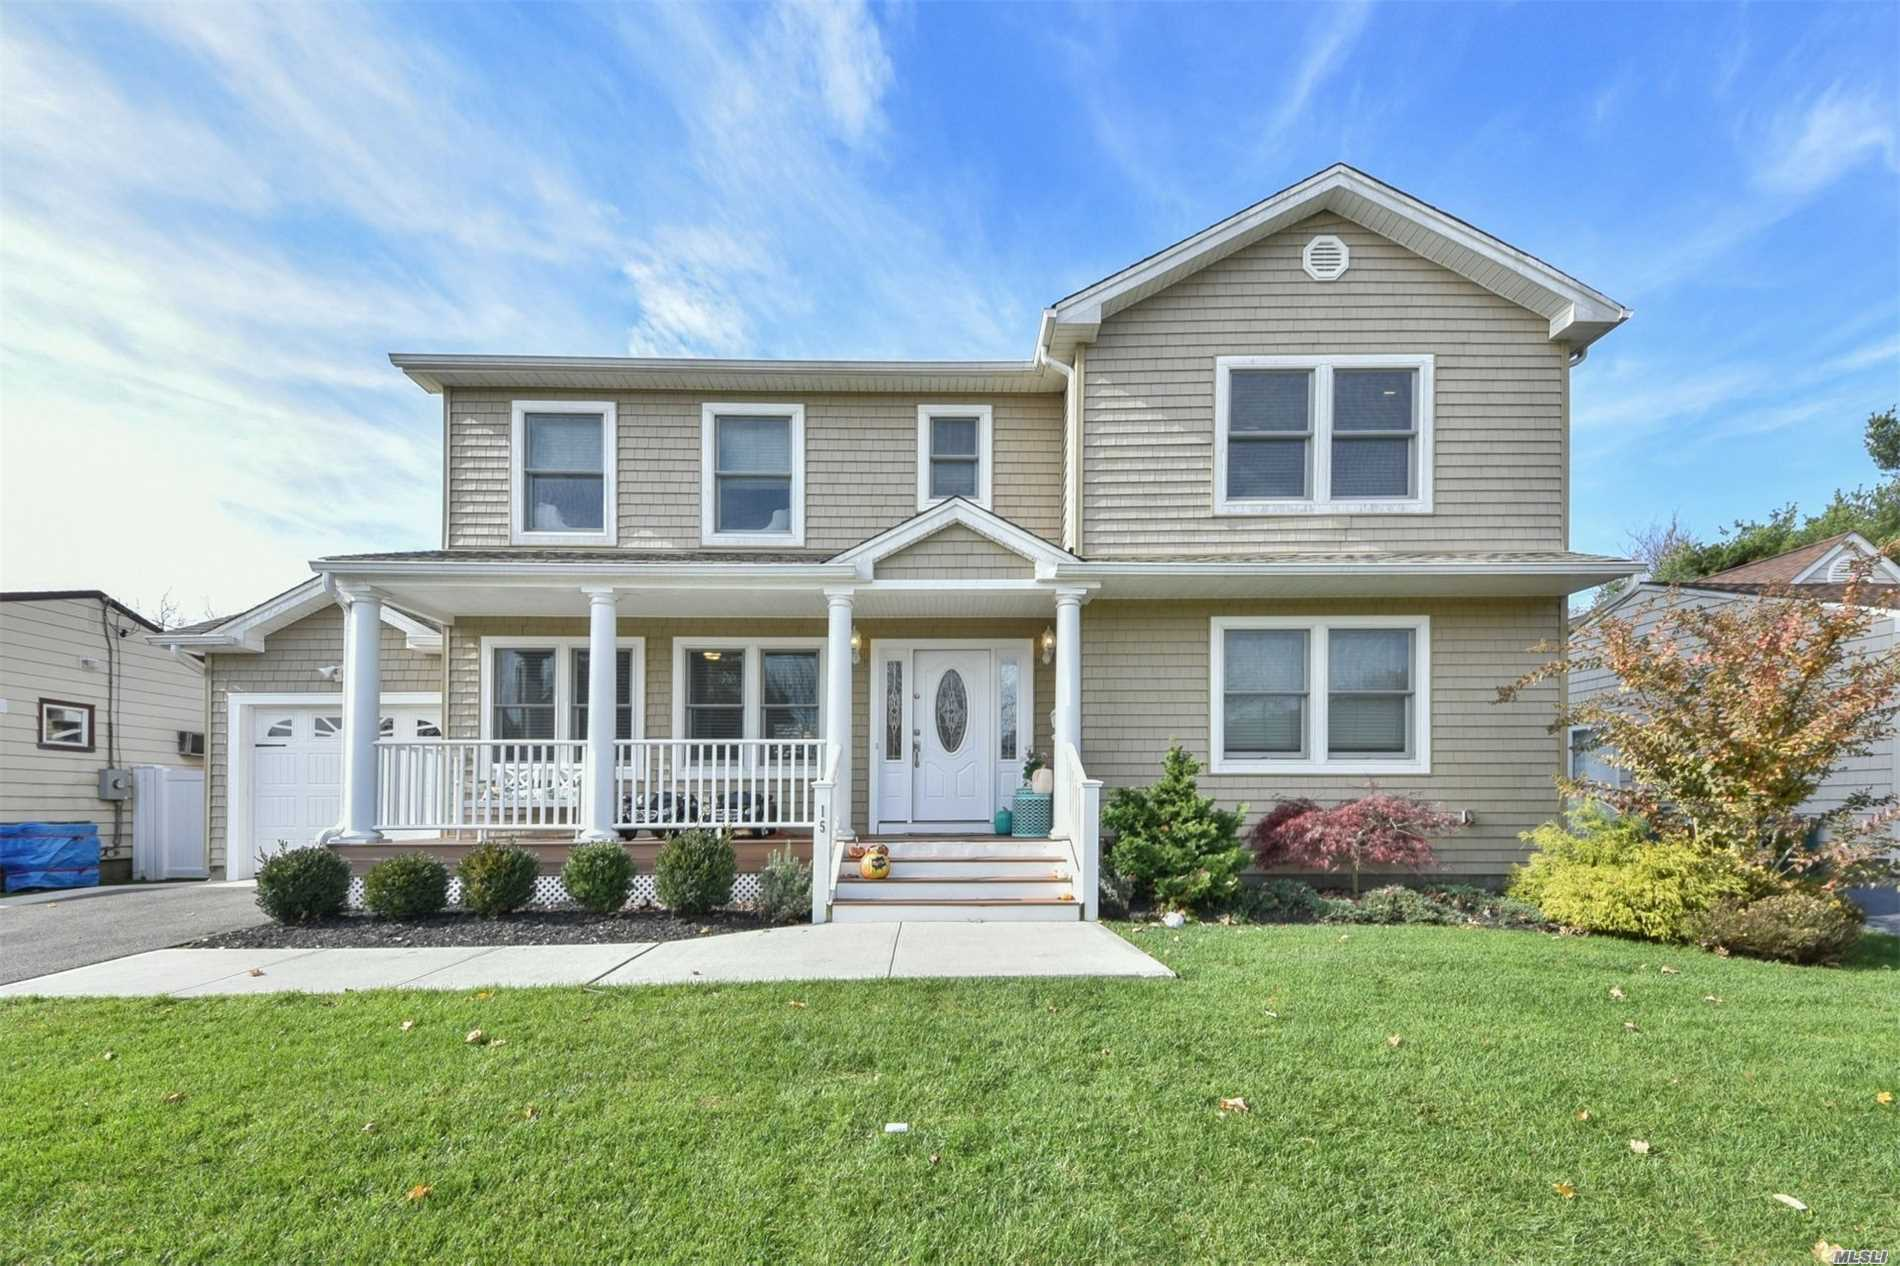 This 4 Year Old Colonial Shows Like New.Located Mid Block On Lush Manicured Landscaped Property With A Country Club Like Backyard Featuring, S/S Granite Center Isle Custom Cabinets Eik, 3 Beautful Bathrooms, 4 Brs On 1 Level, 200 Amps, Trex Porch, Hardwd.Many Energy Efficient Features Including Appliances , Furnace, Cac, Windows, Etc. Taxes Being Grieved For The 1st Time!!!!A Must See!Seller Will Offer $5000 A Year For 3 Years Towards Taxes!!MAJOR PRICE IMPROVEMENT!!